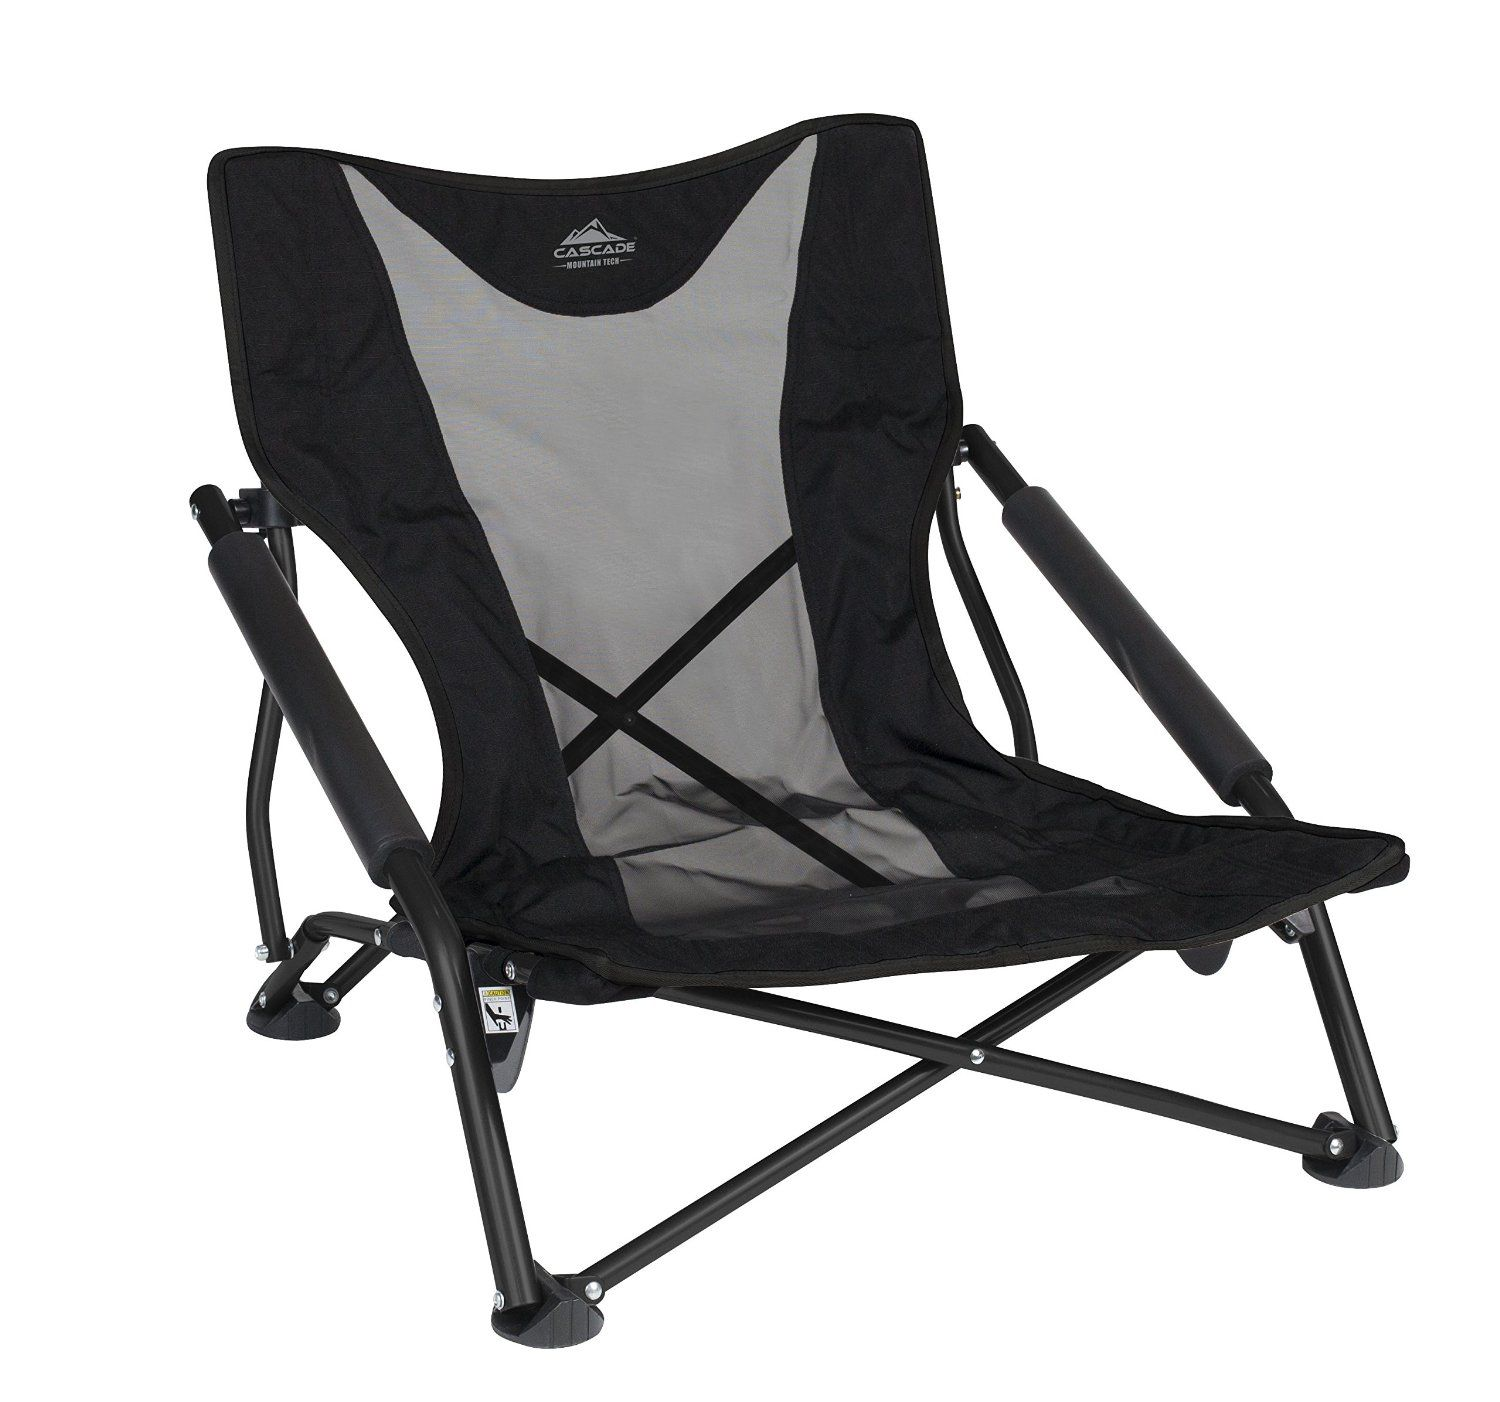 Top 10 Best Folding Beach Chairs in 2019 Reviews Buyers